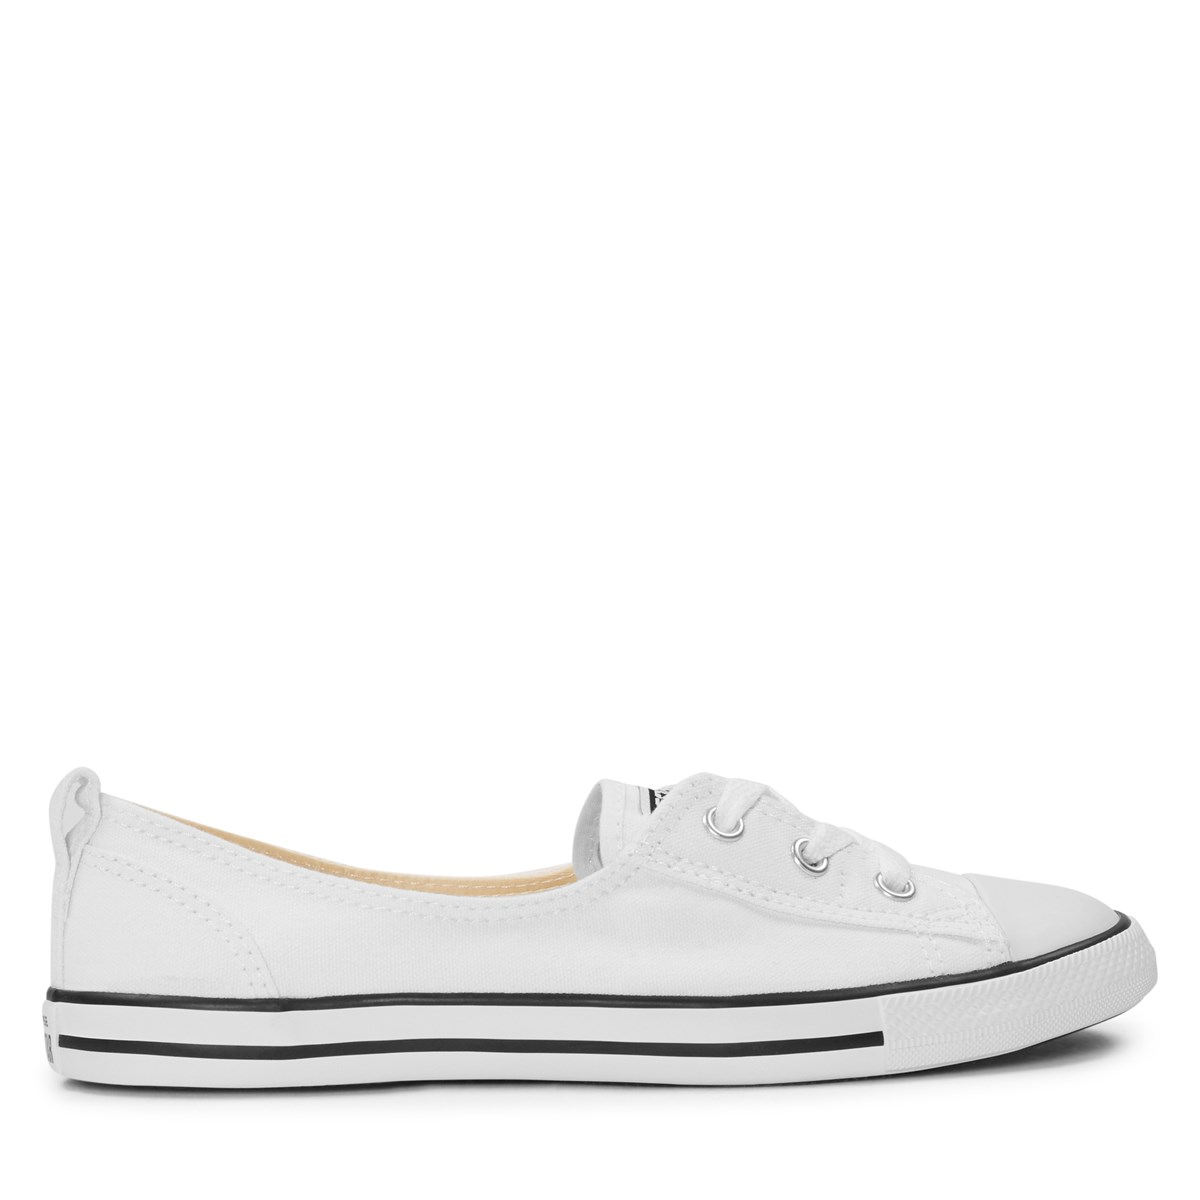 Women's Chuck Taylor Ballet Lace Slip-On